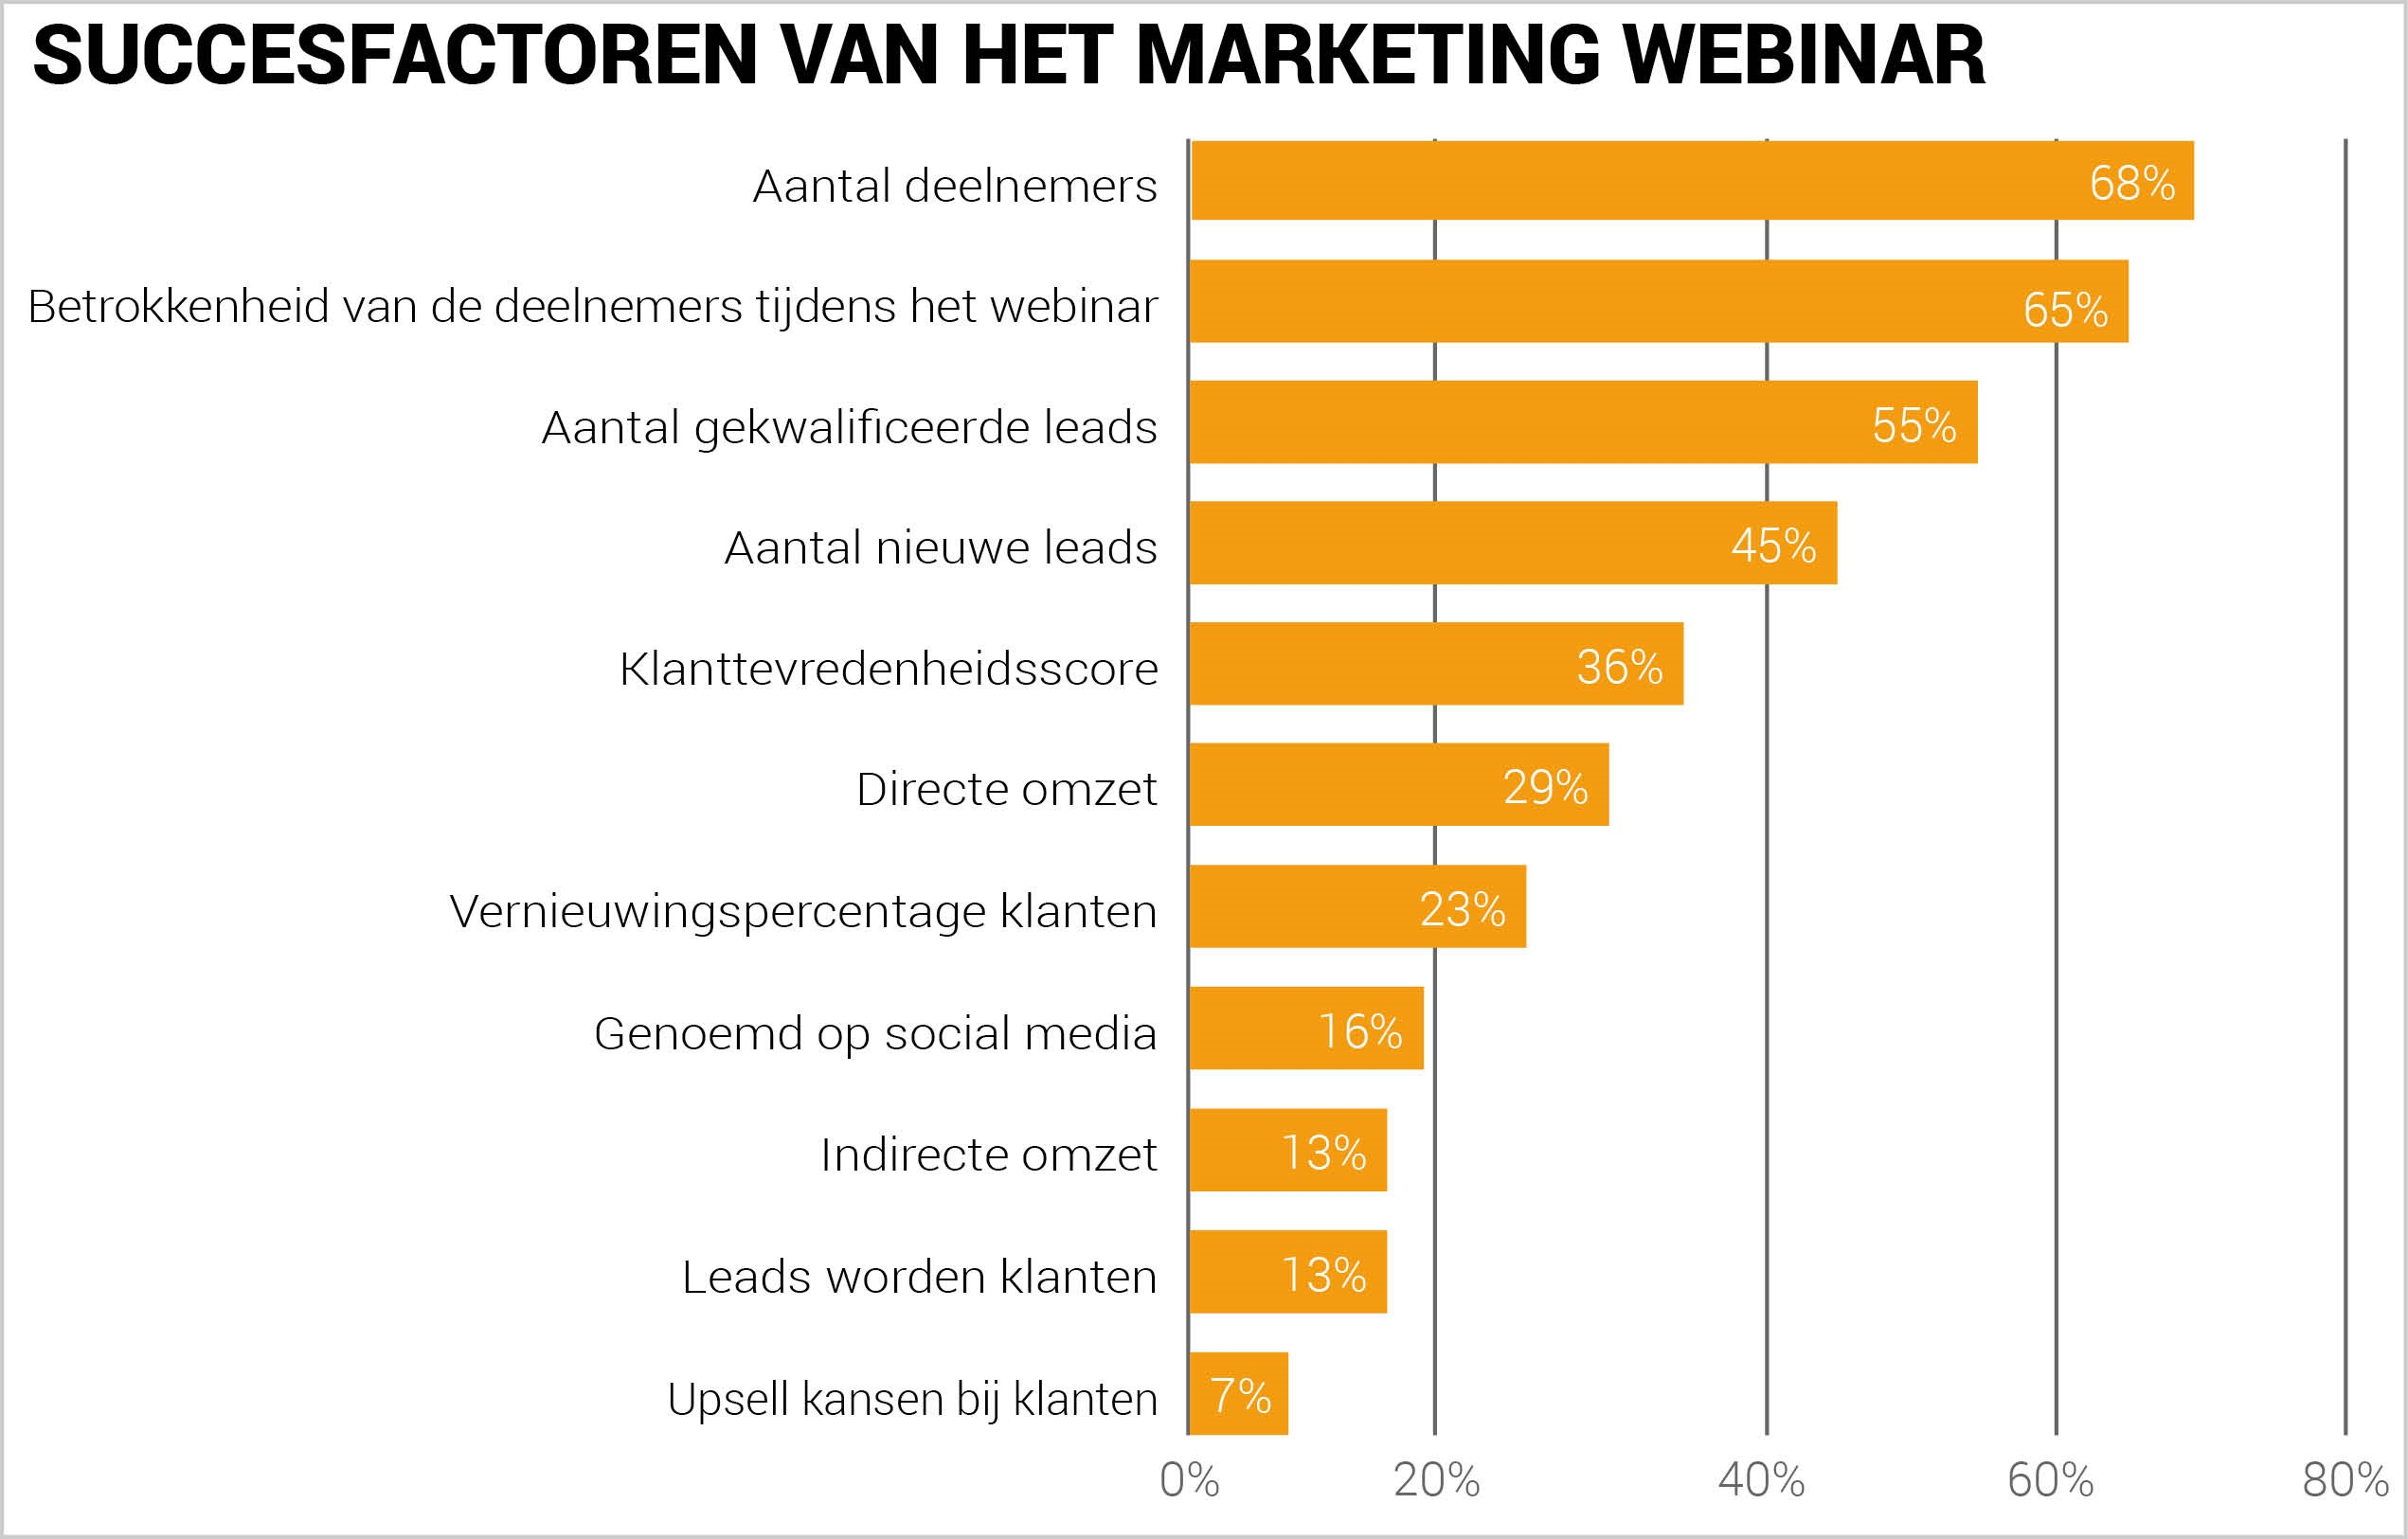 Succesfactoren van het marketing webinar